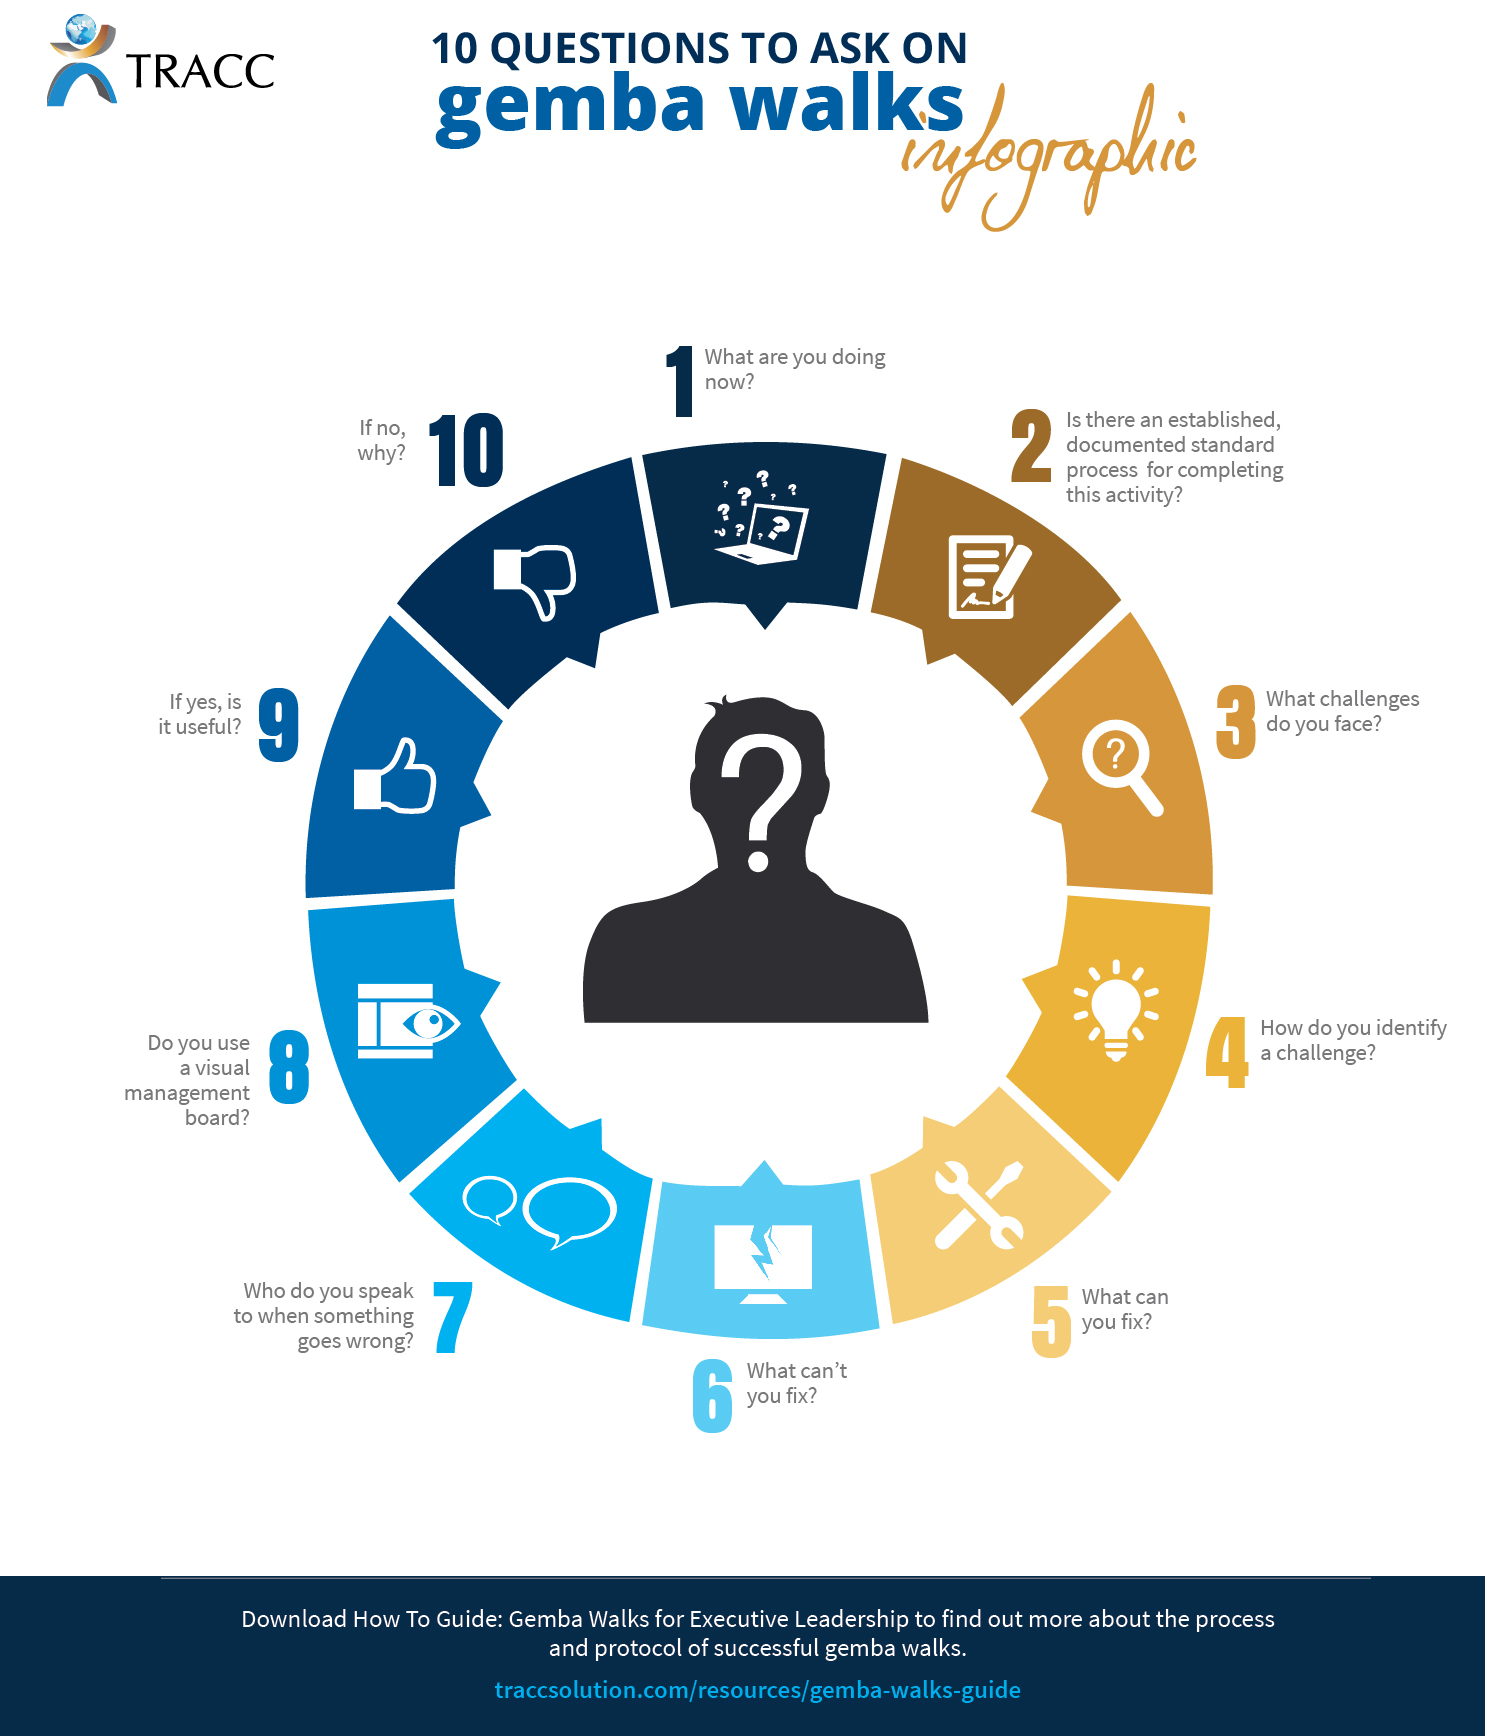 10-questions-gemba-walks-infographic